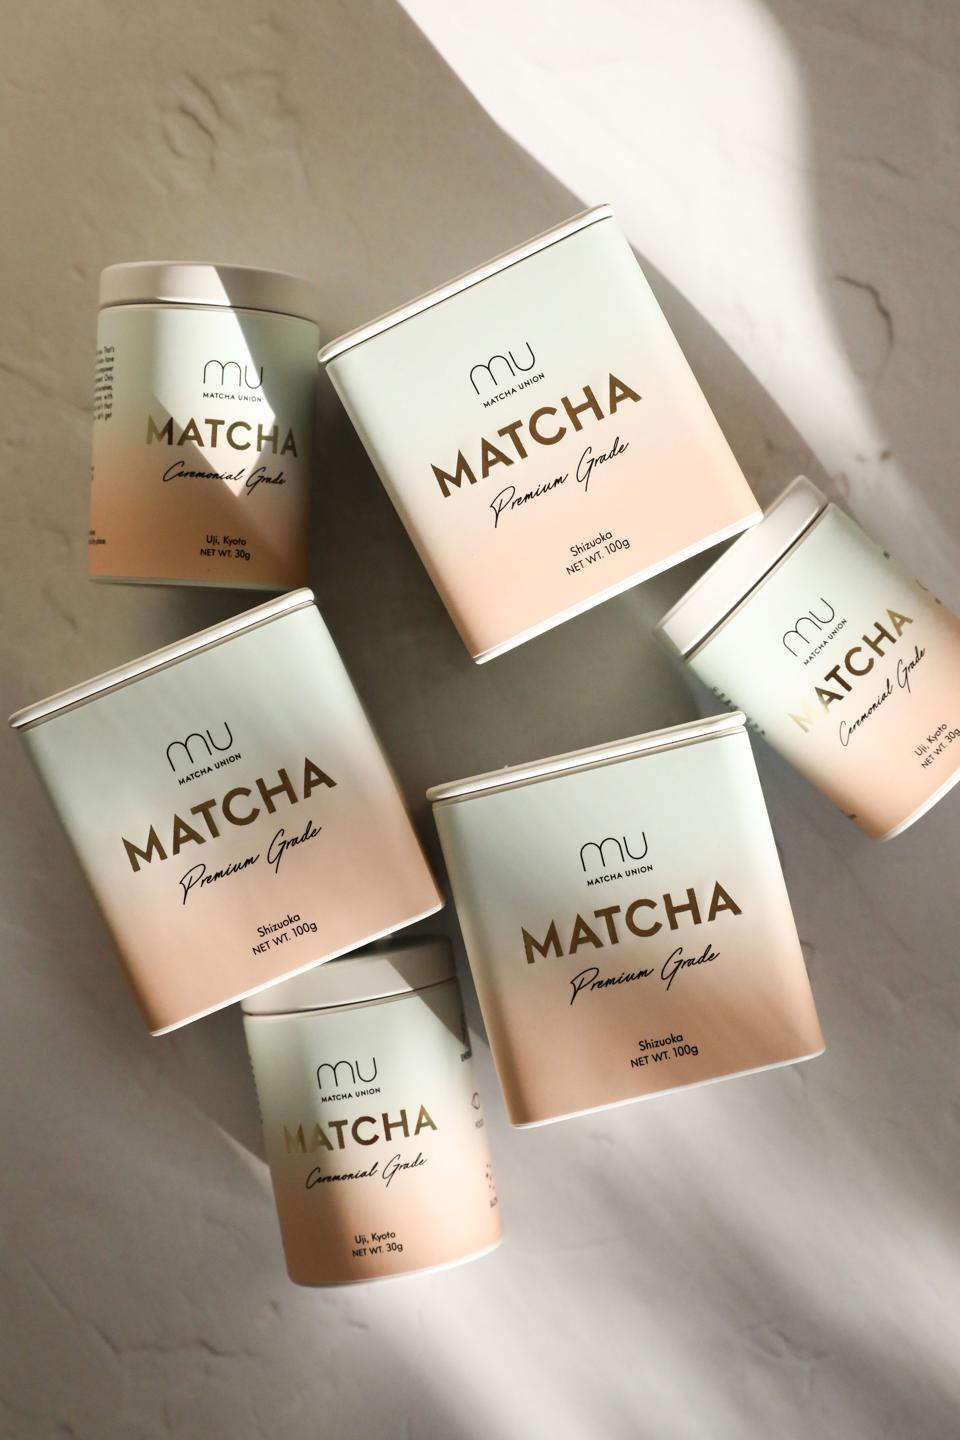 Products by Matcha Union